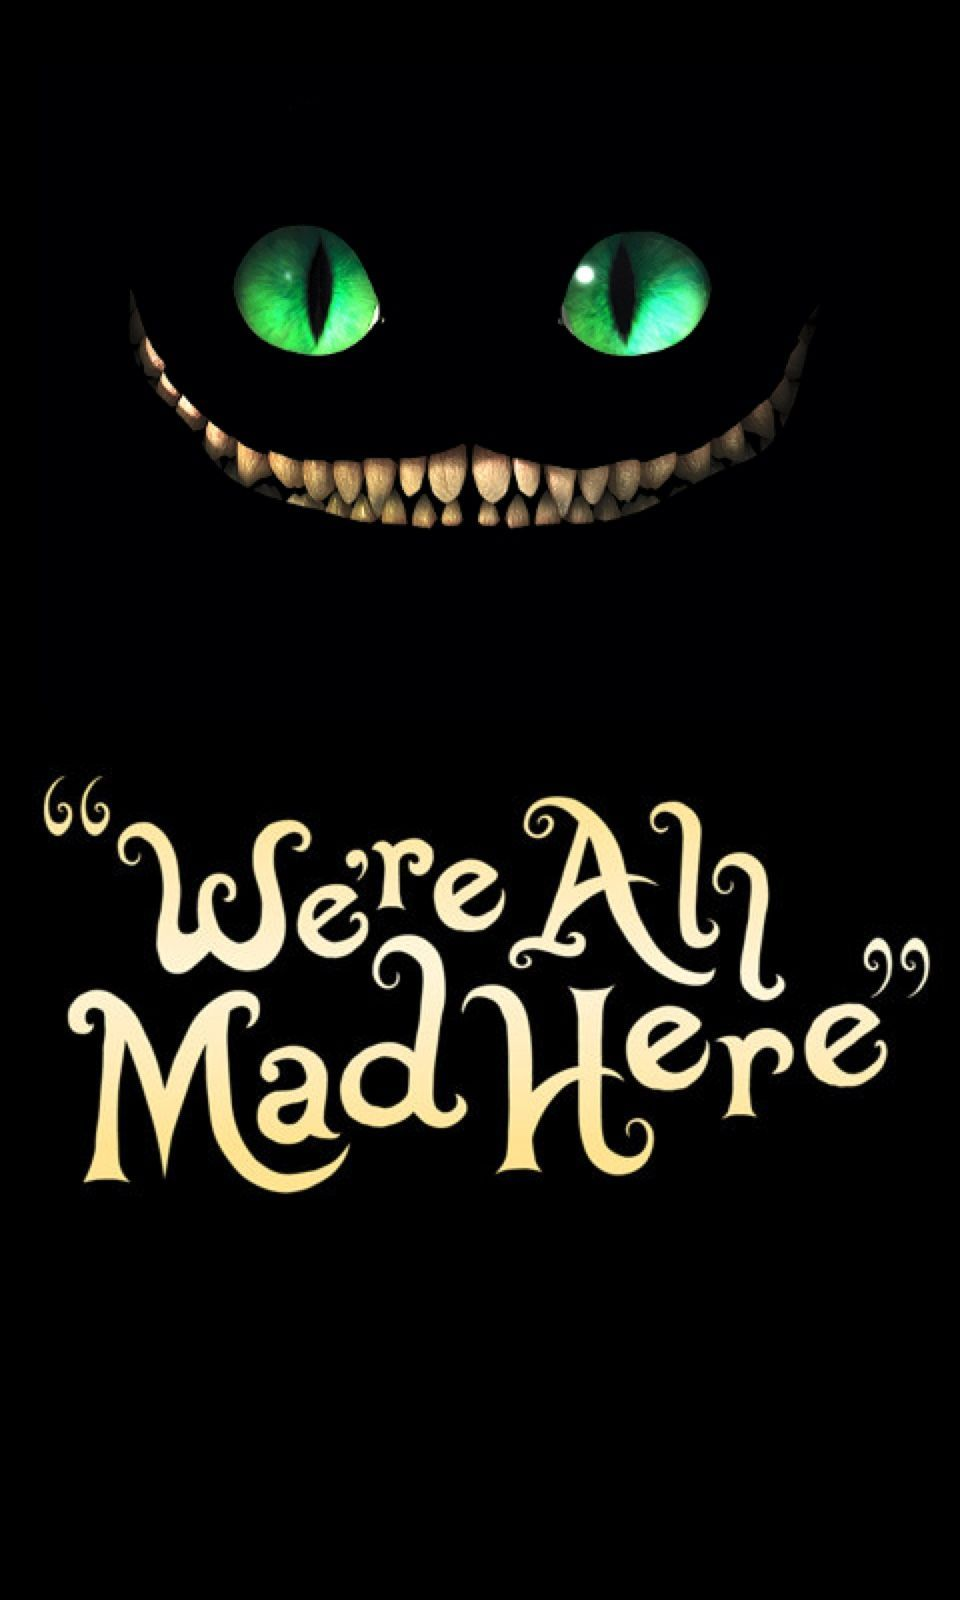 Cheshire Cat Wallpapers Top Free Cheshire Cat Backgrounds